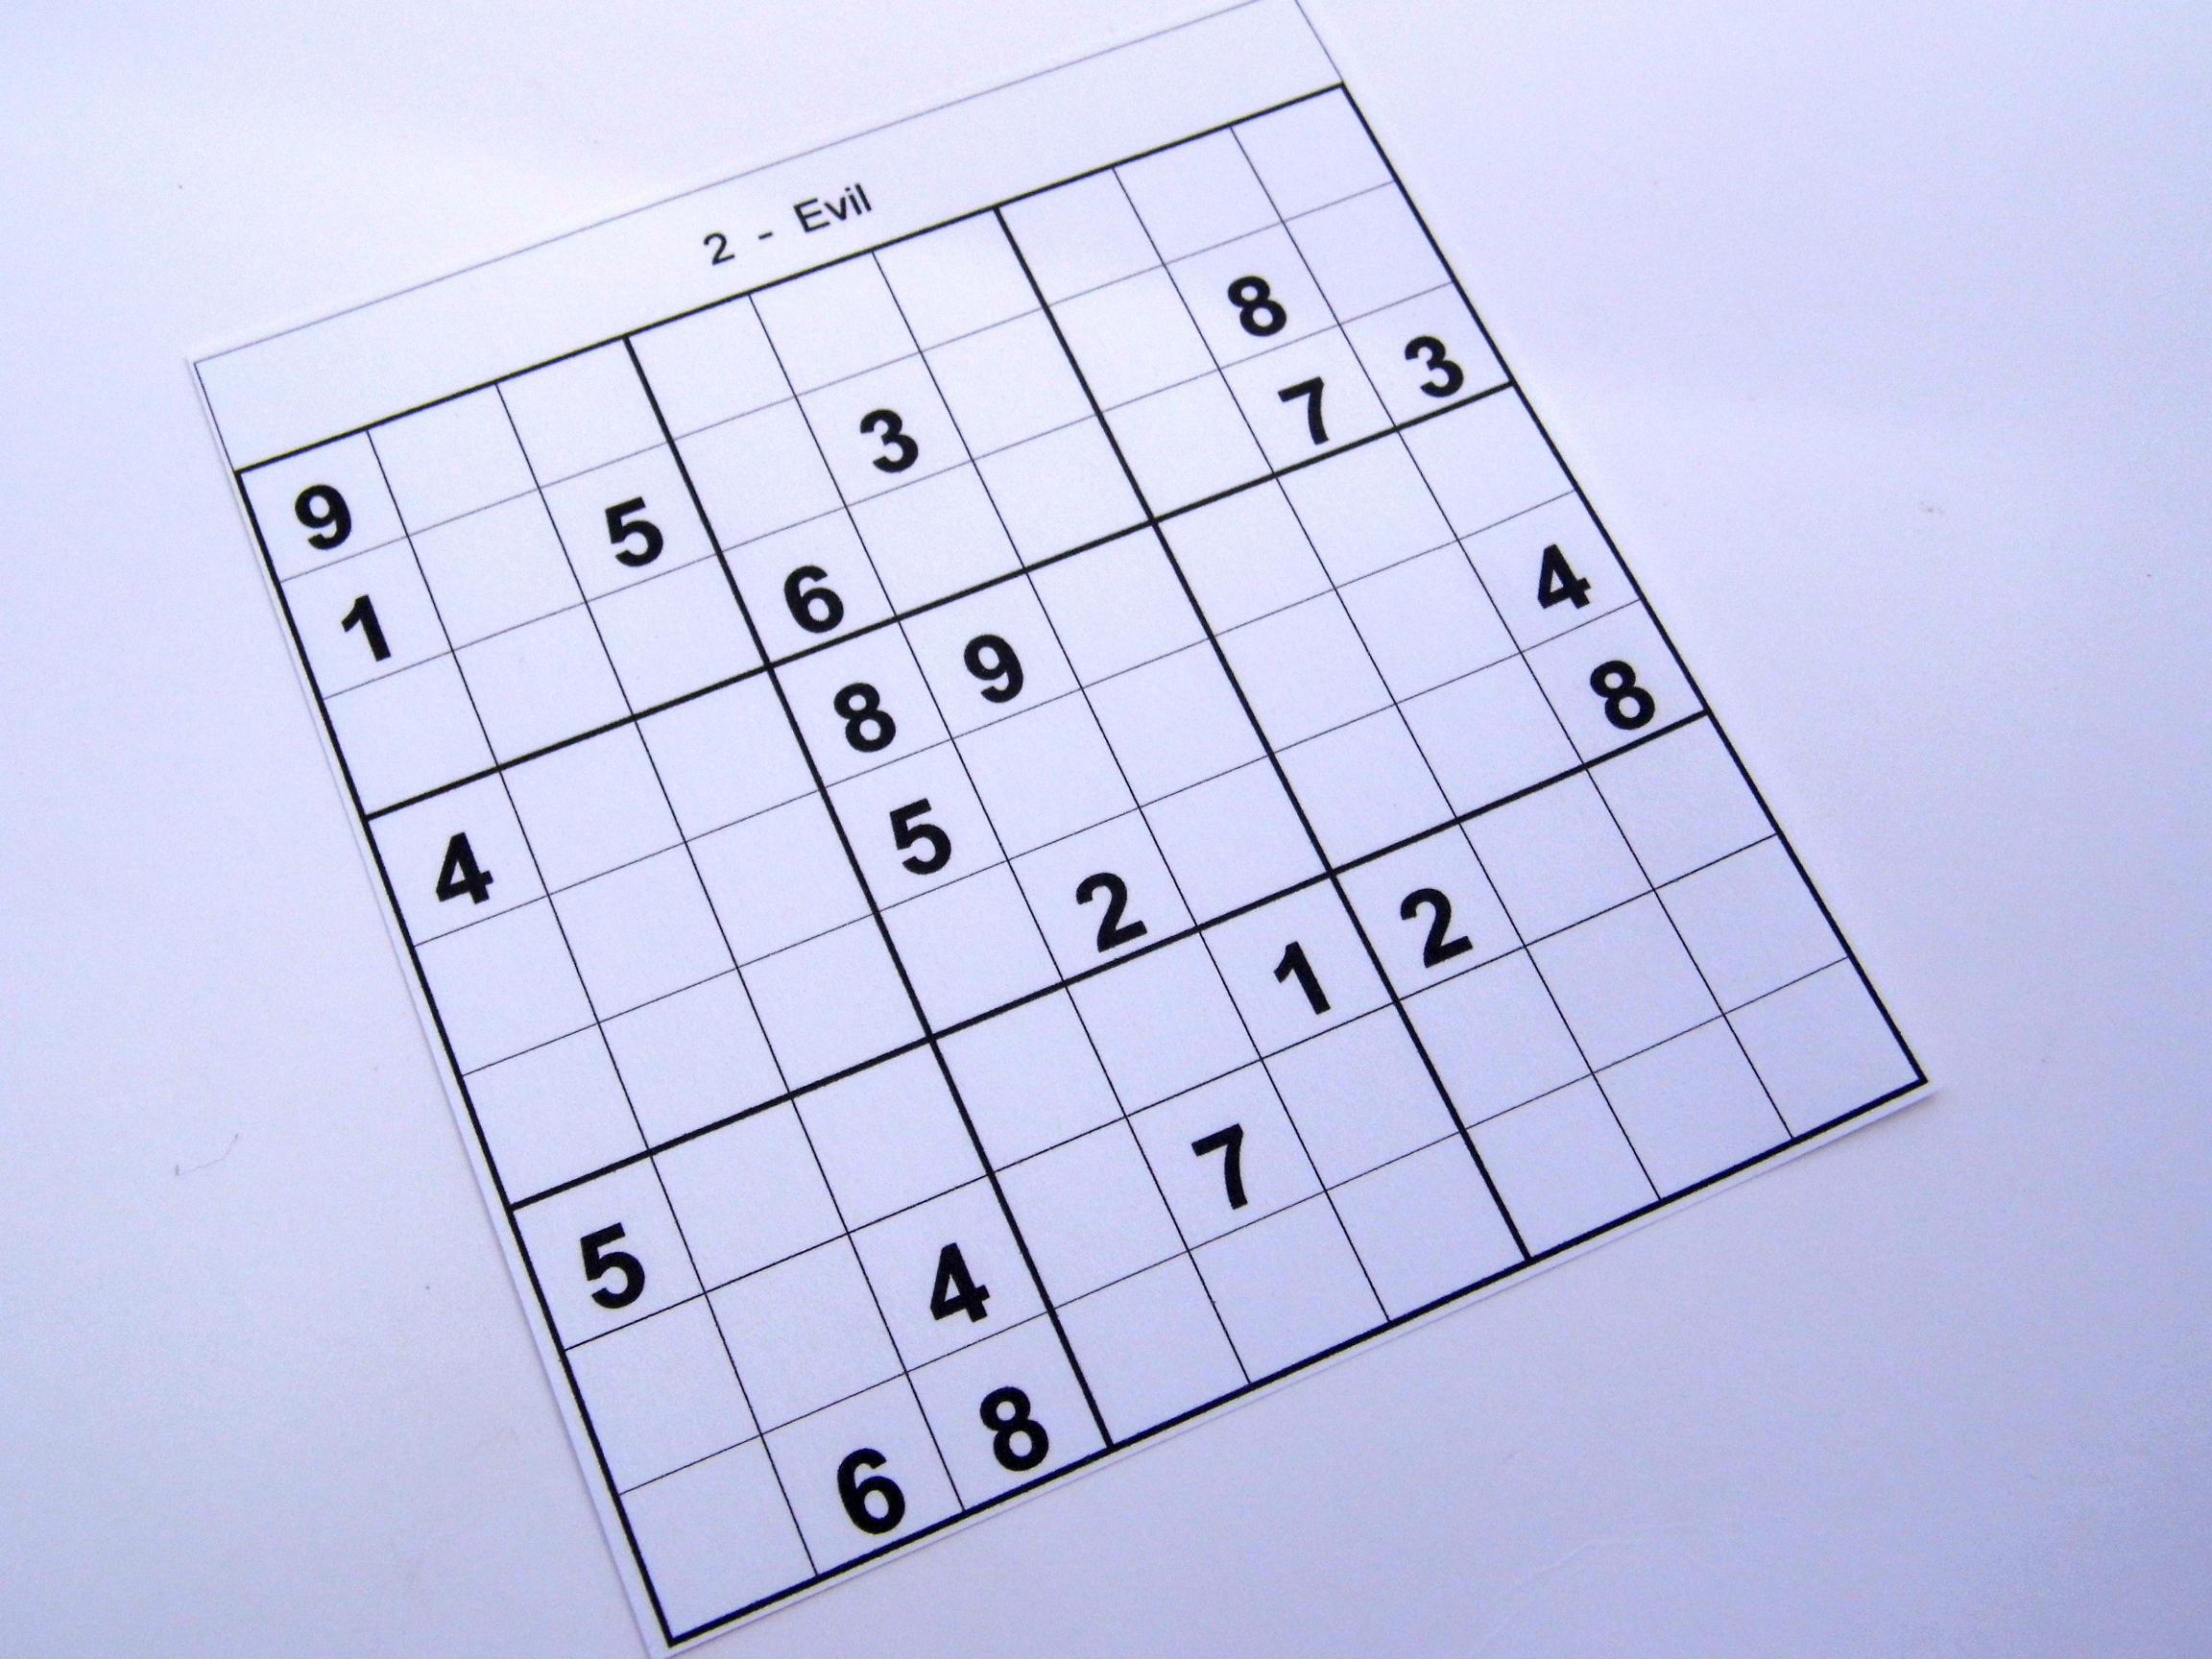 Archive Evil Puzzles – Free Sudoku Puzzles - Free Printable Sudoku 6 - Printable Sudoku Puzzles 6 Per Page